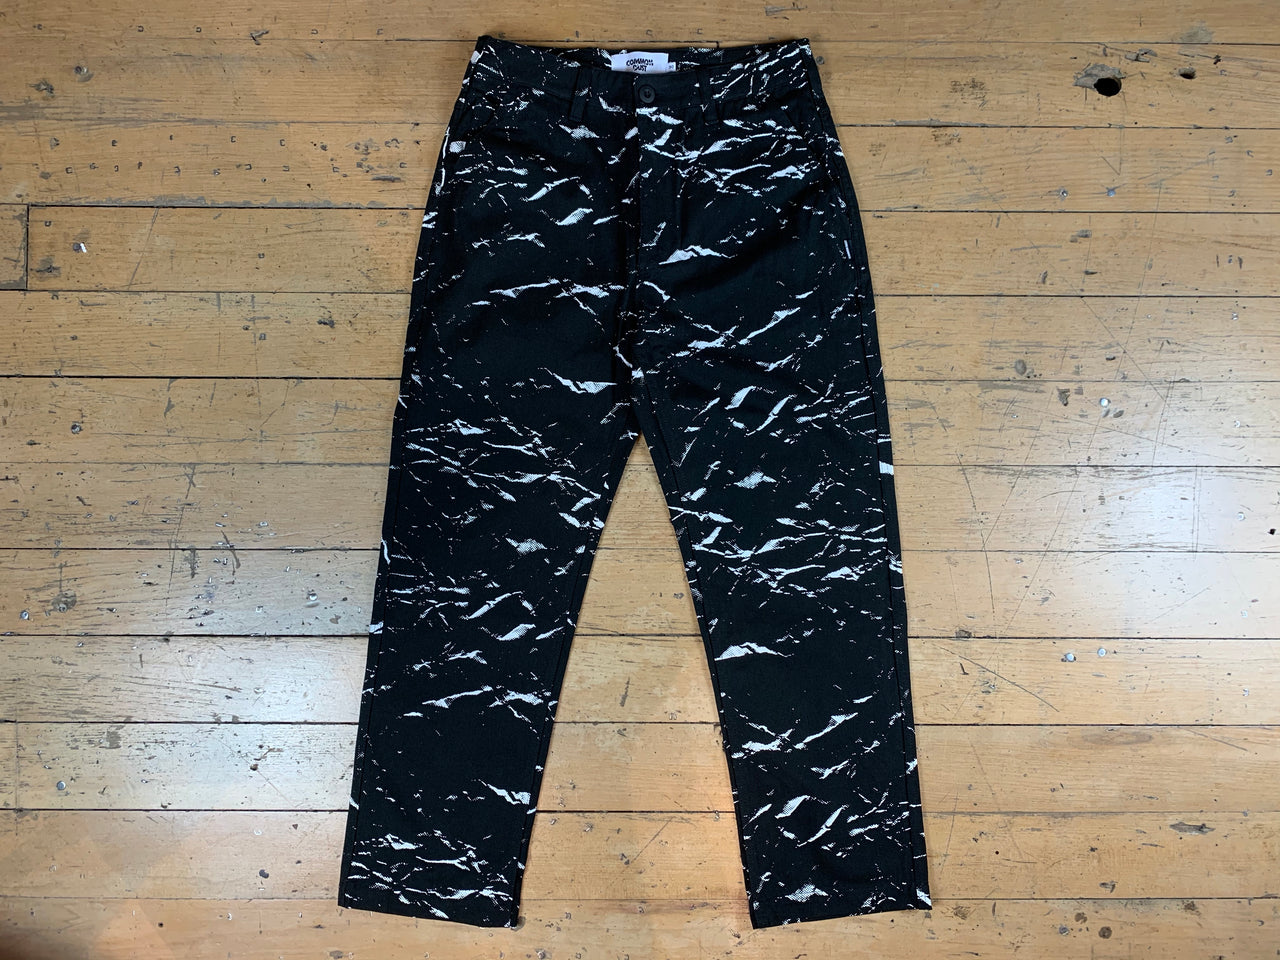 Crushed Paper Work Pant - Black